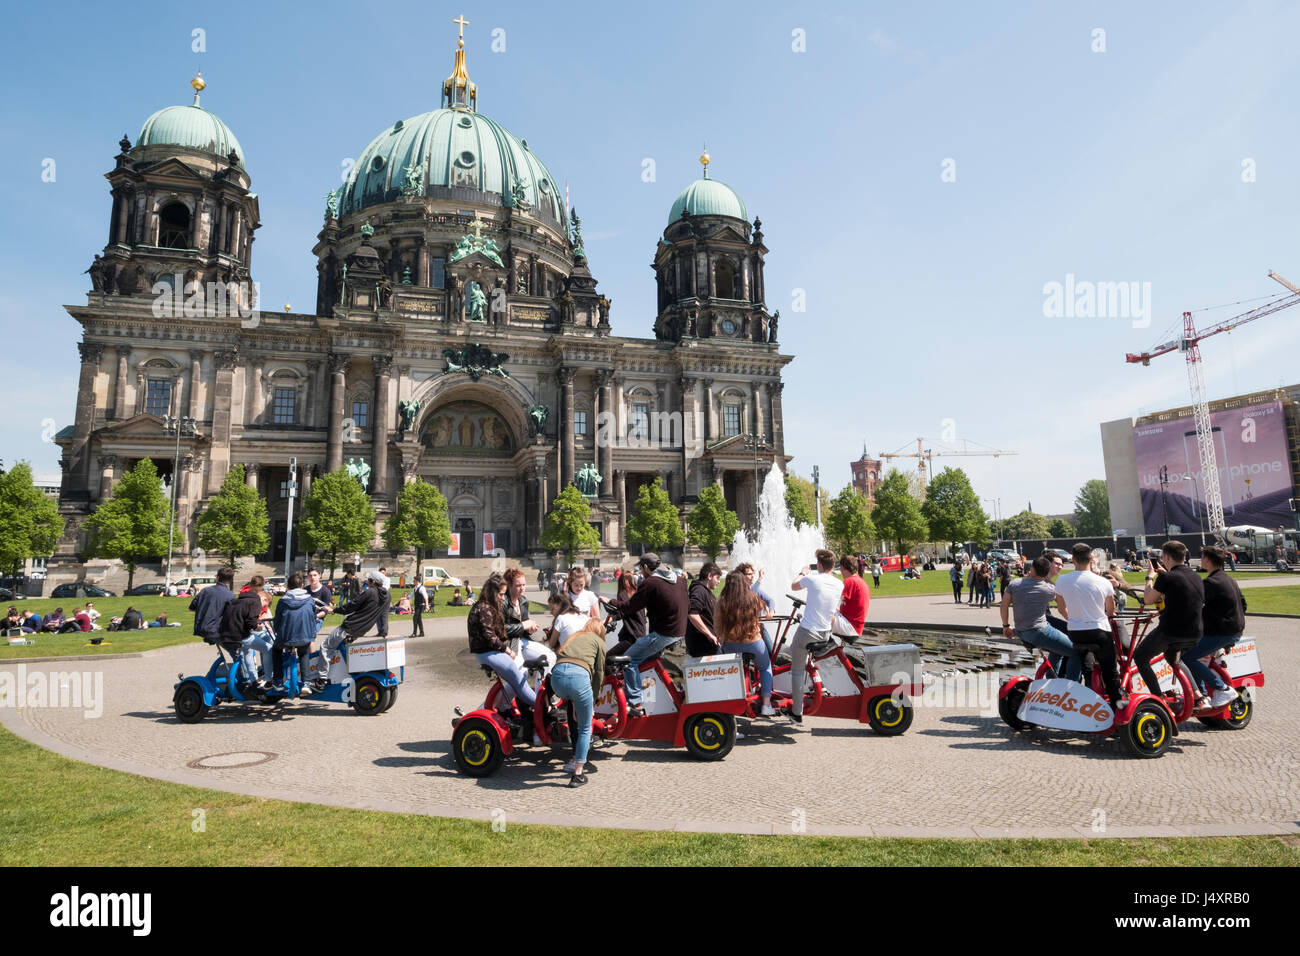 Berlin Cathedral and Lustgarten with tourists on team bikes, Berlin, Germany - Stock Image